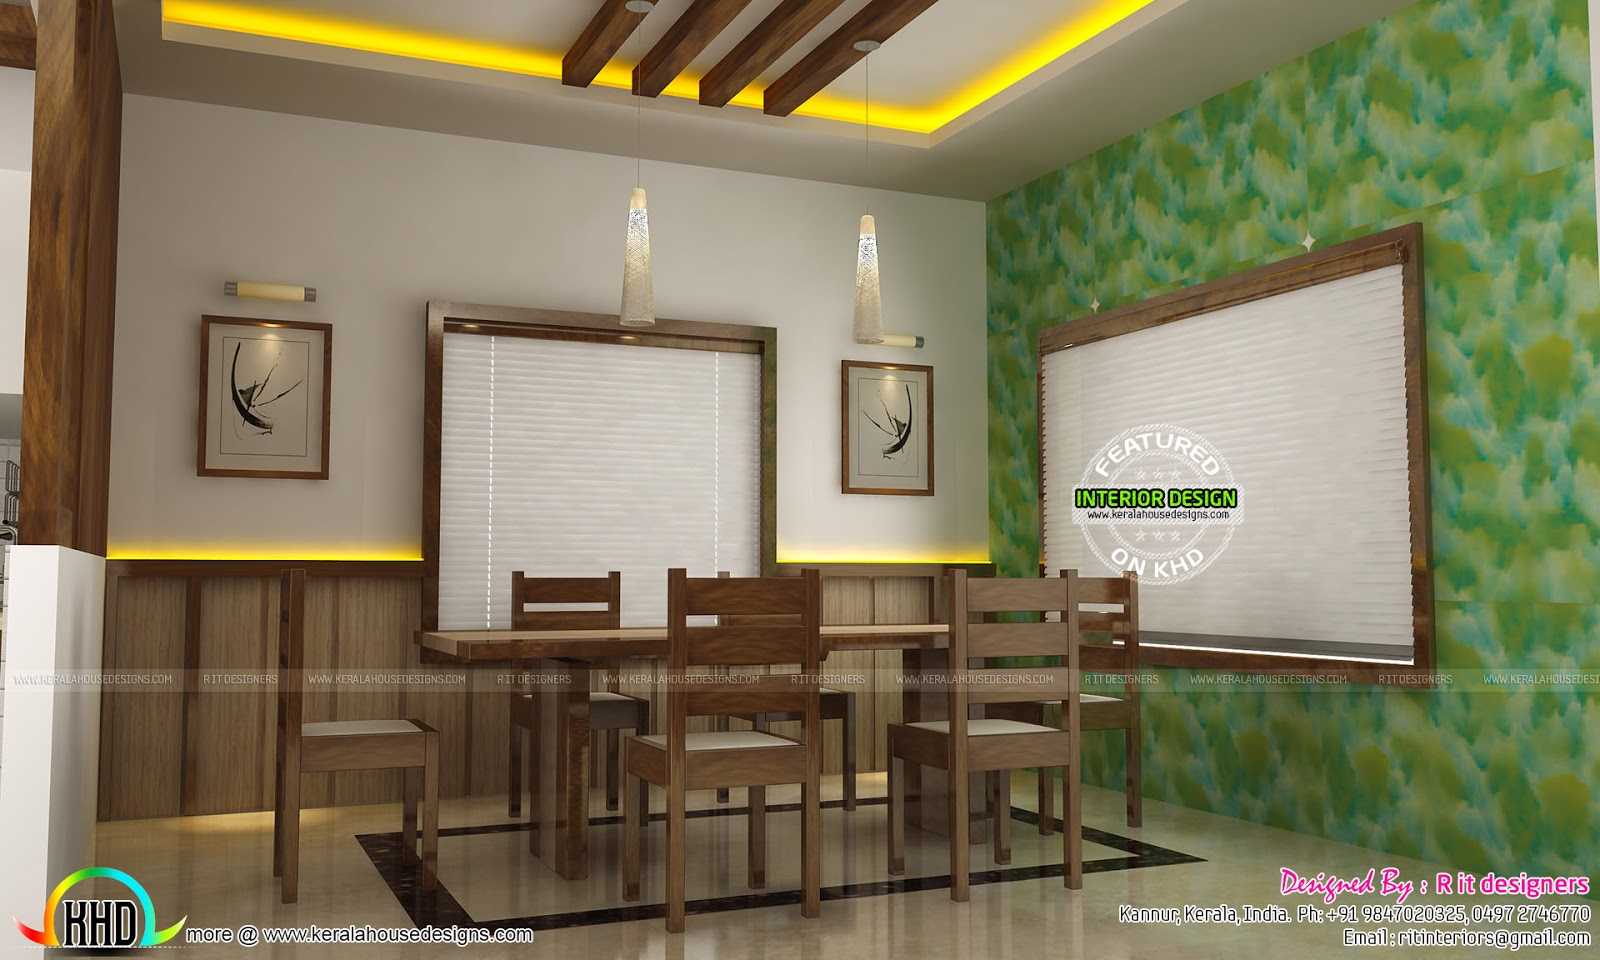 Living Room Interior Design India dining, kitchen, living room interior designs - kerala home design